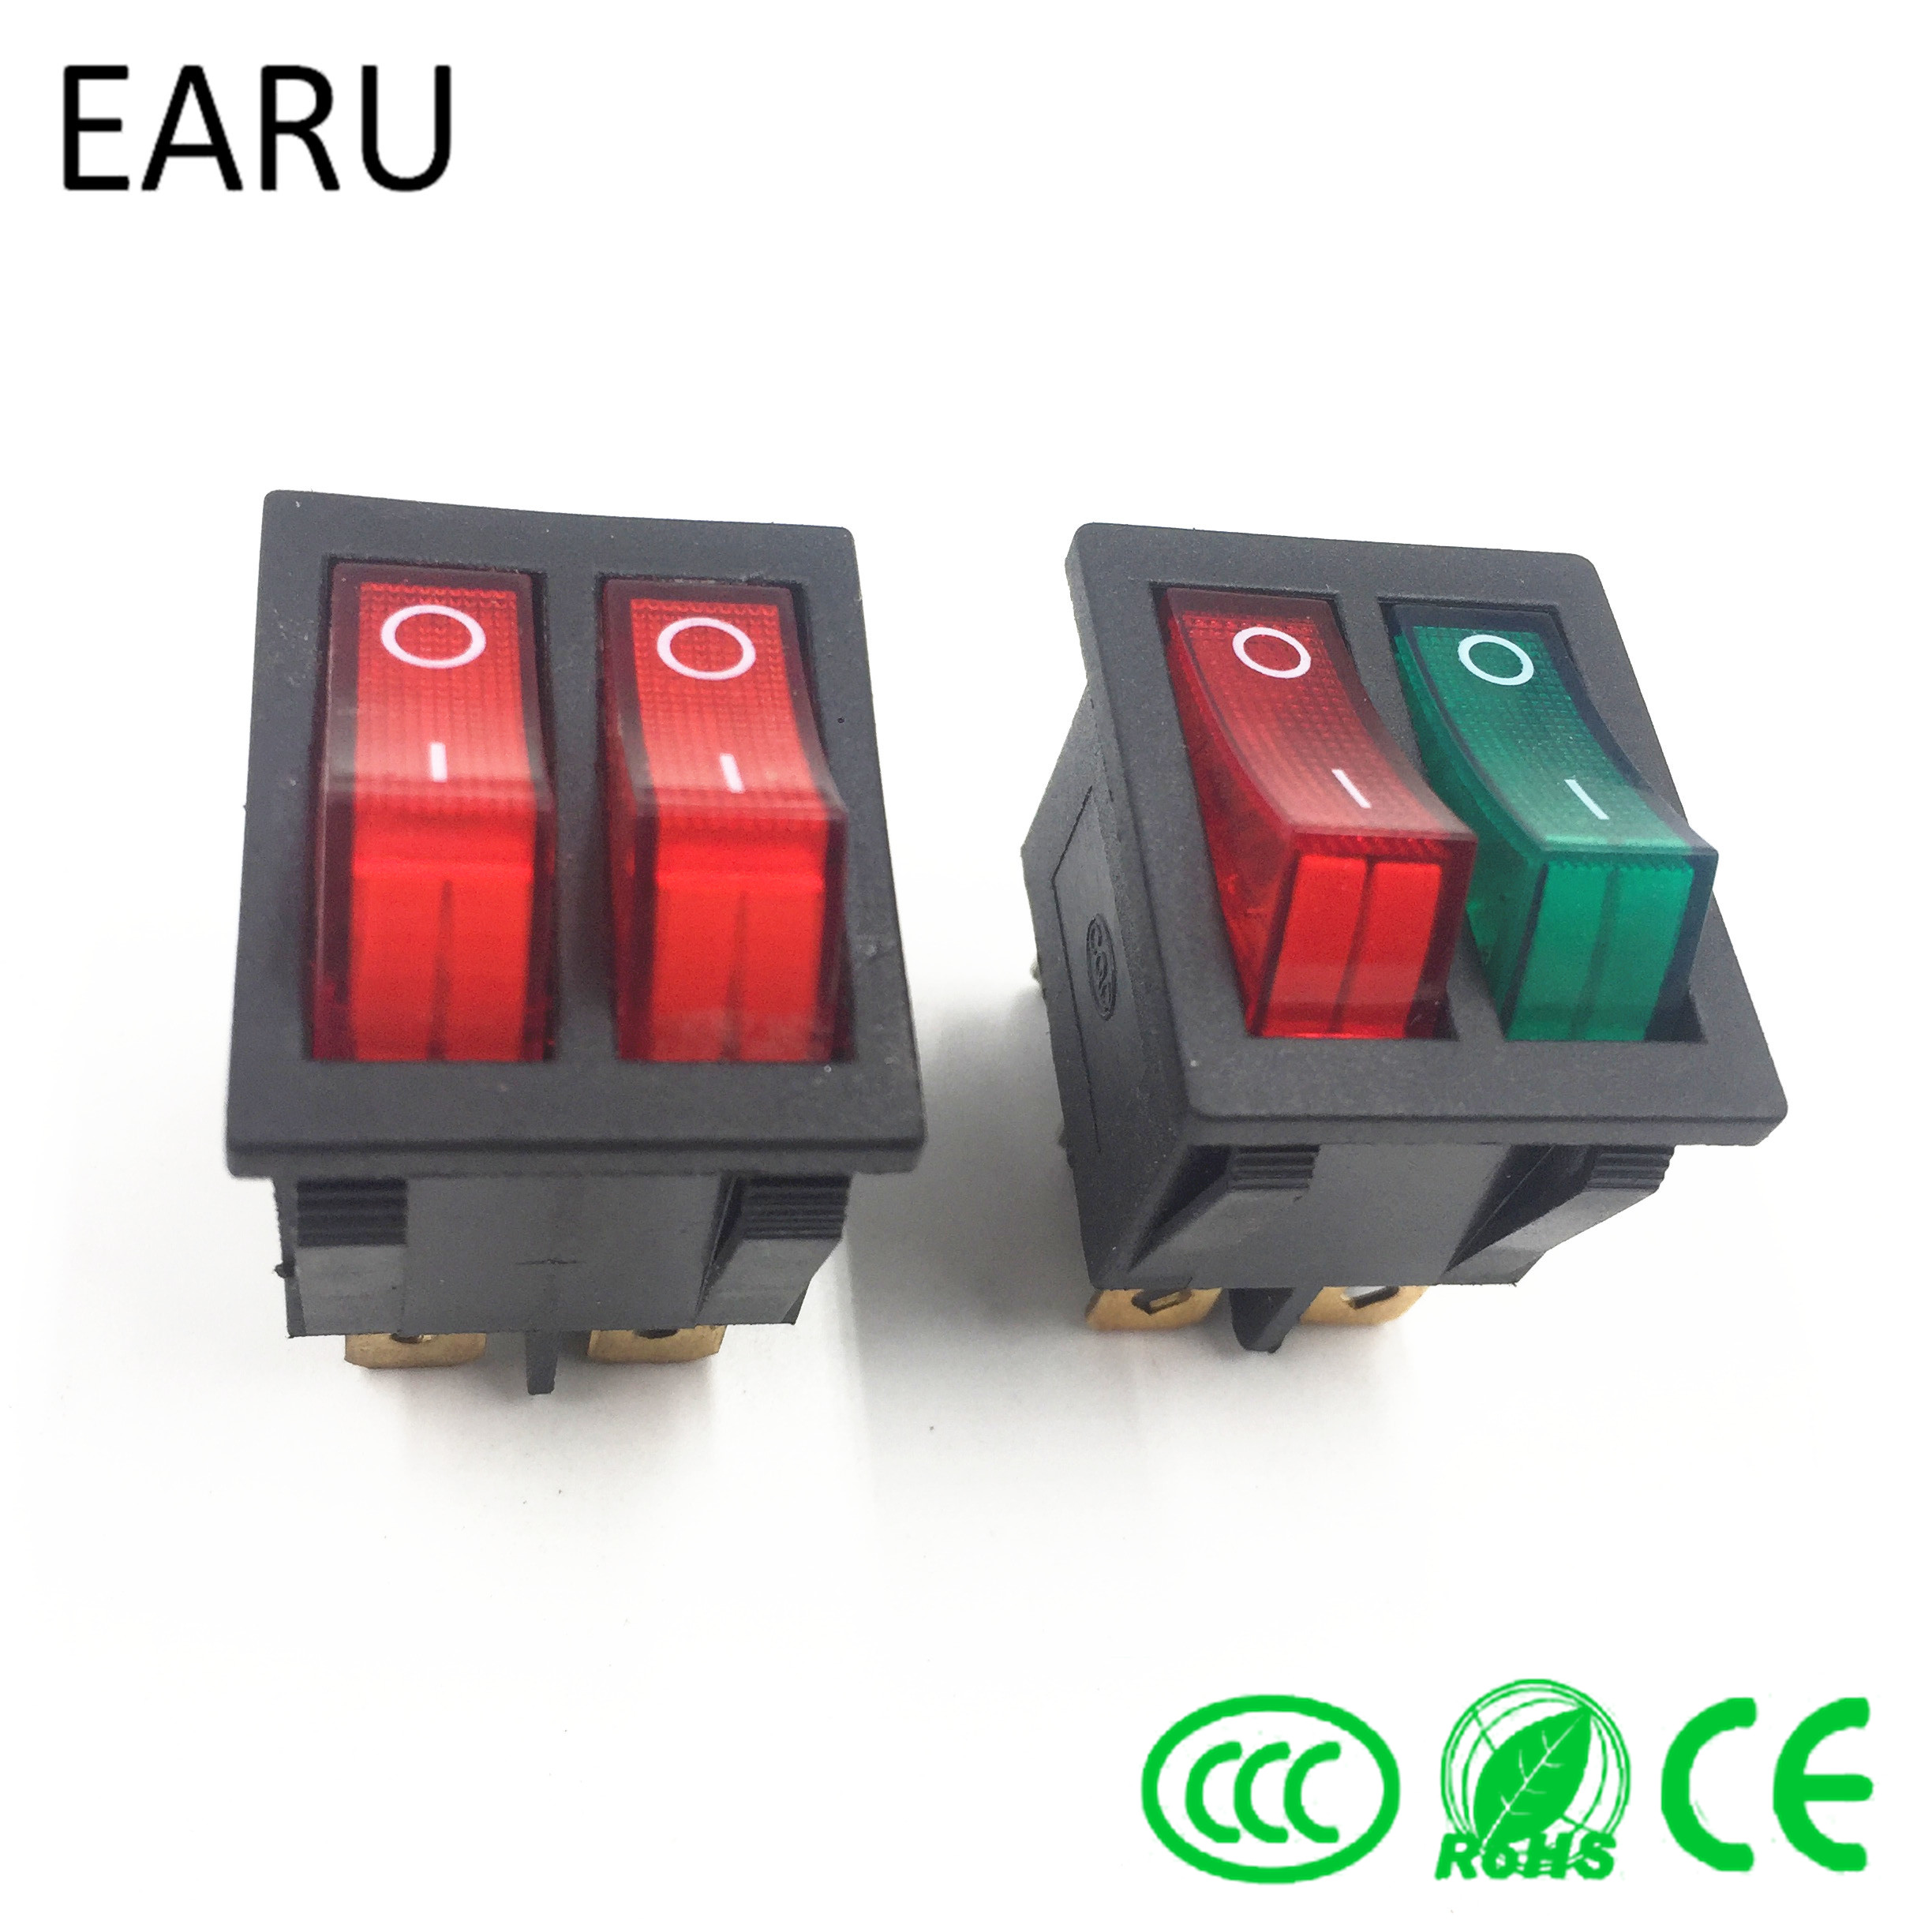 1pc diy model kcd3 double boat rocker switch toggle 6 pin on off with green [ 2448 x 2448 Pixel ]